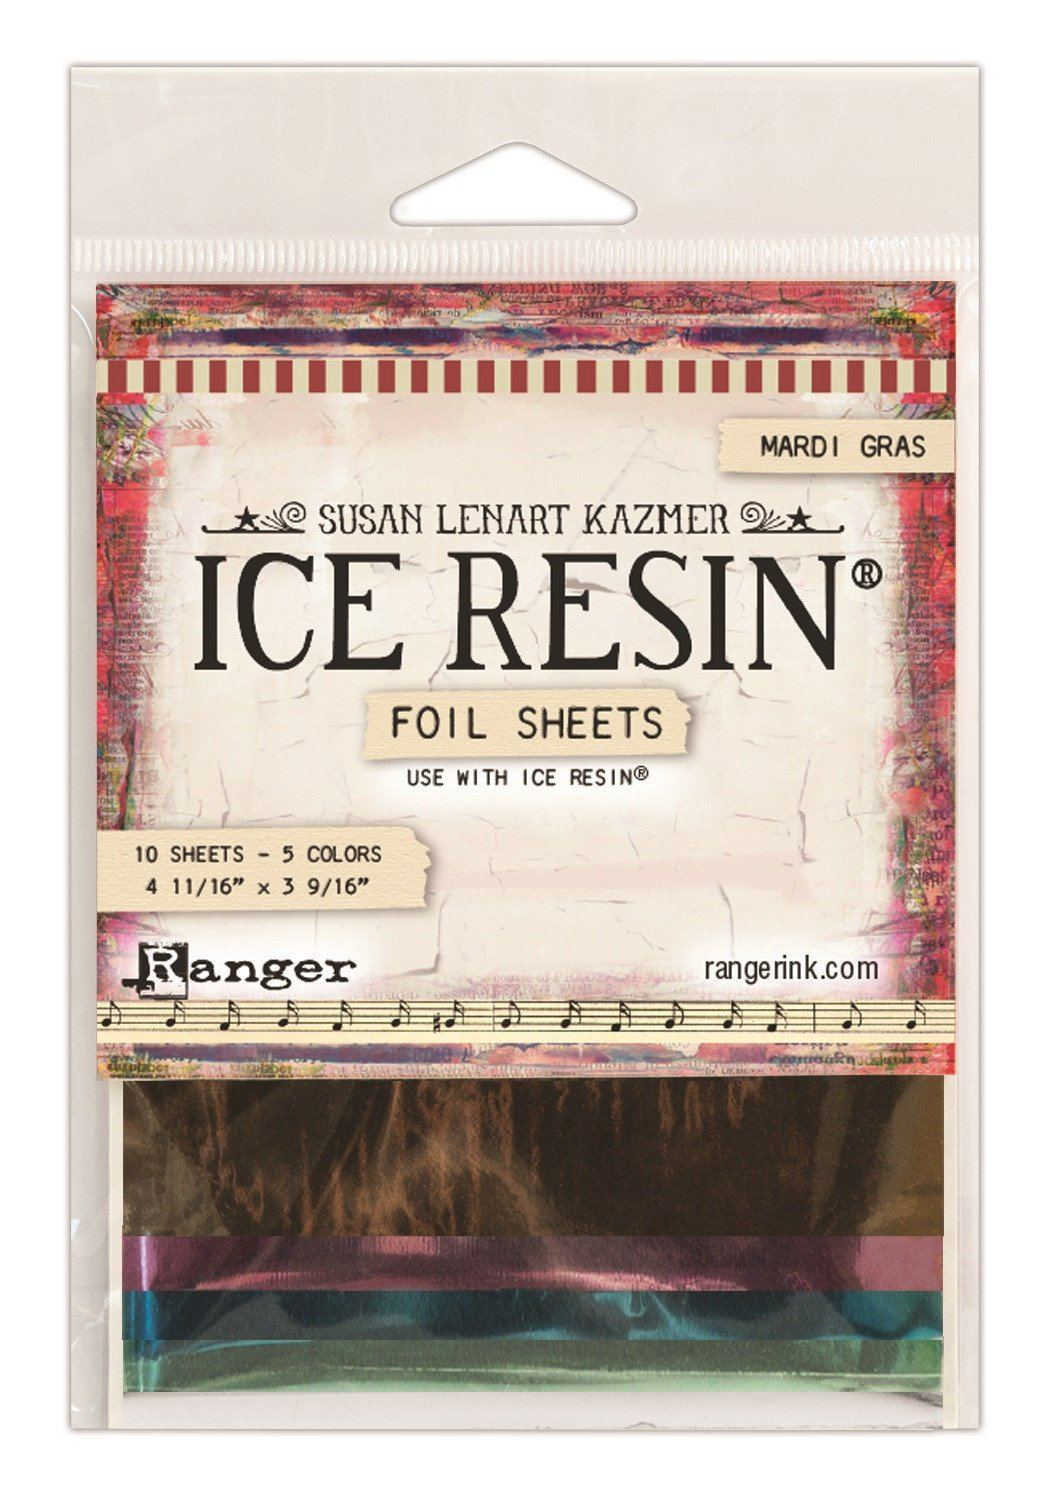 Ice Resin foil sheets